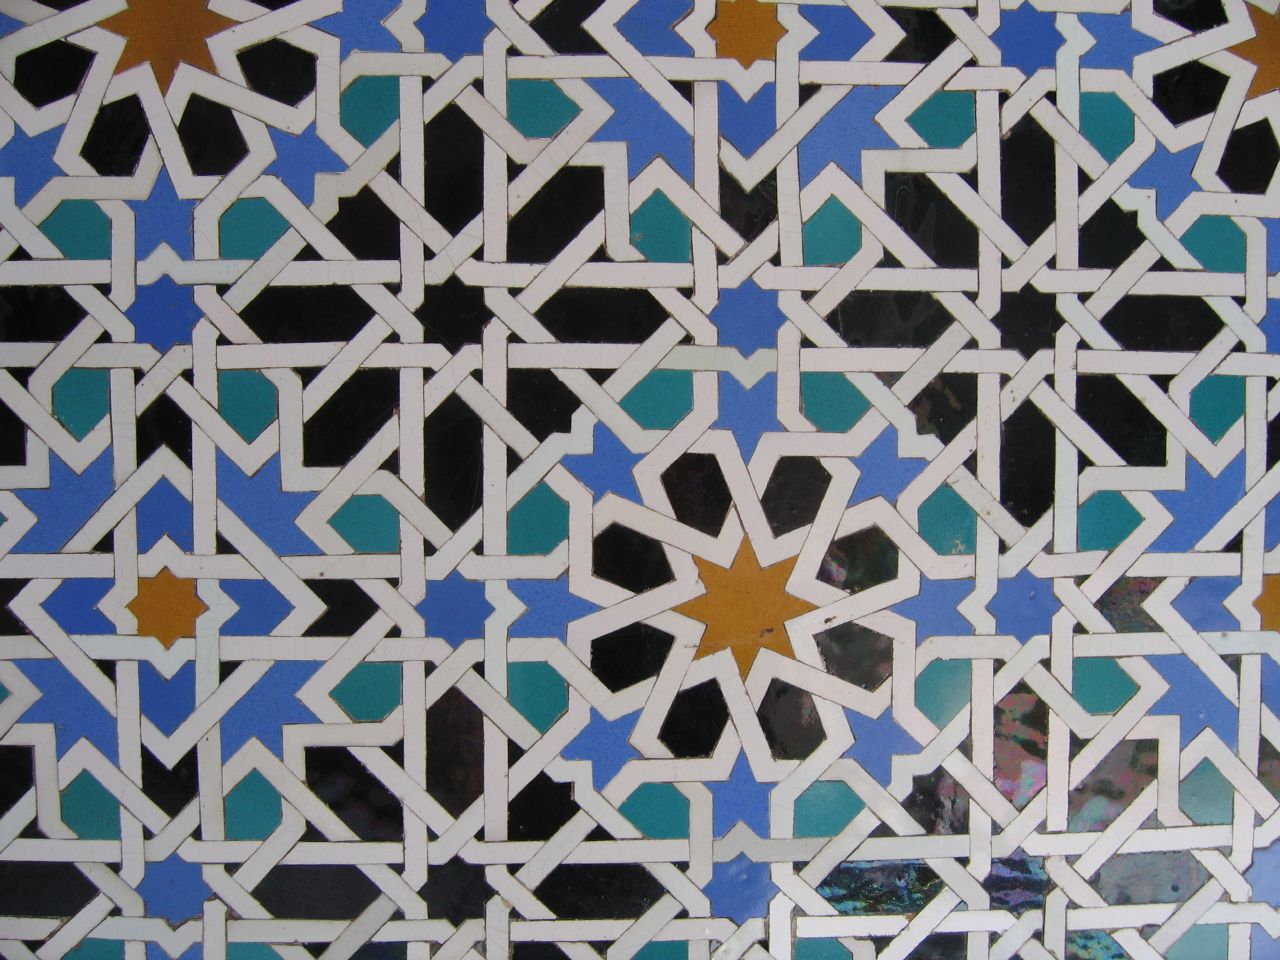 Example of Islamic geometry in mosaic tile art form